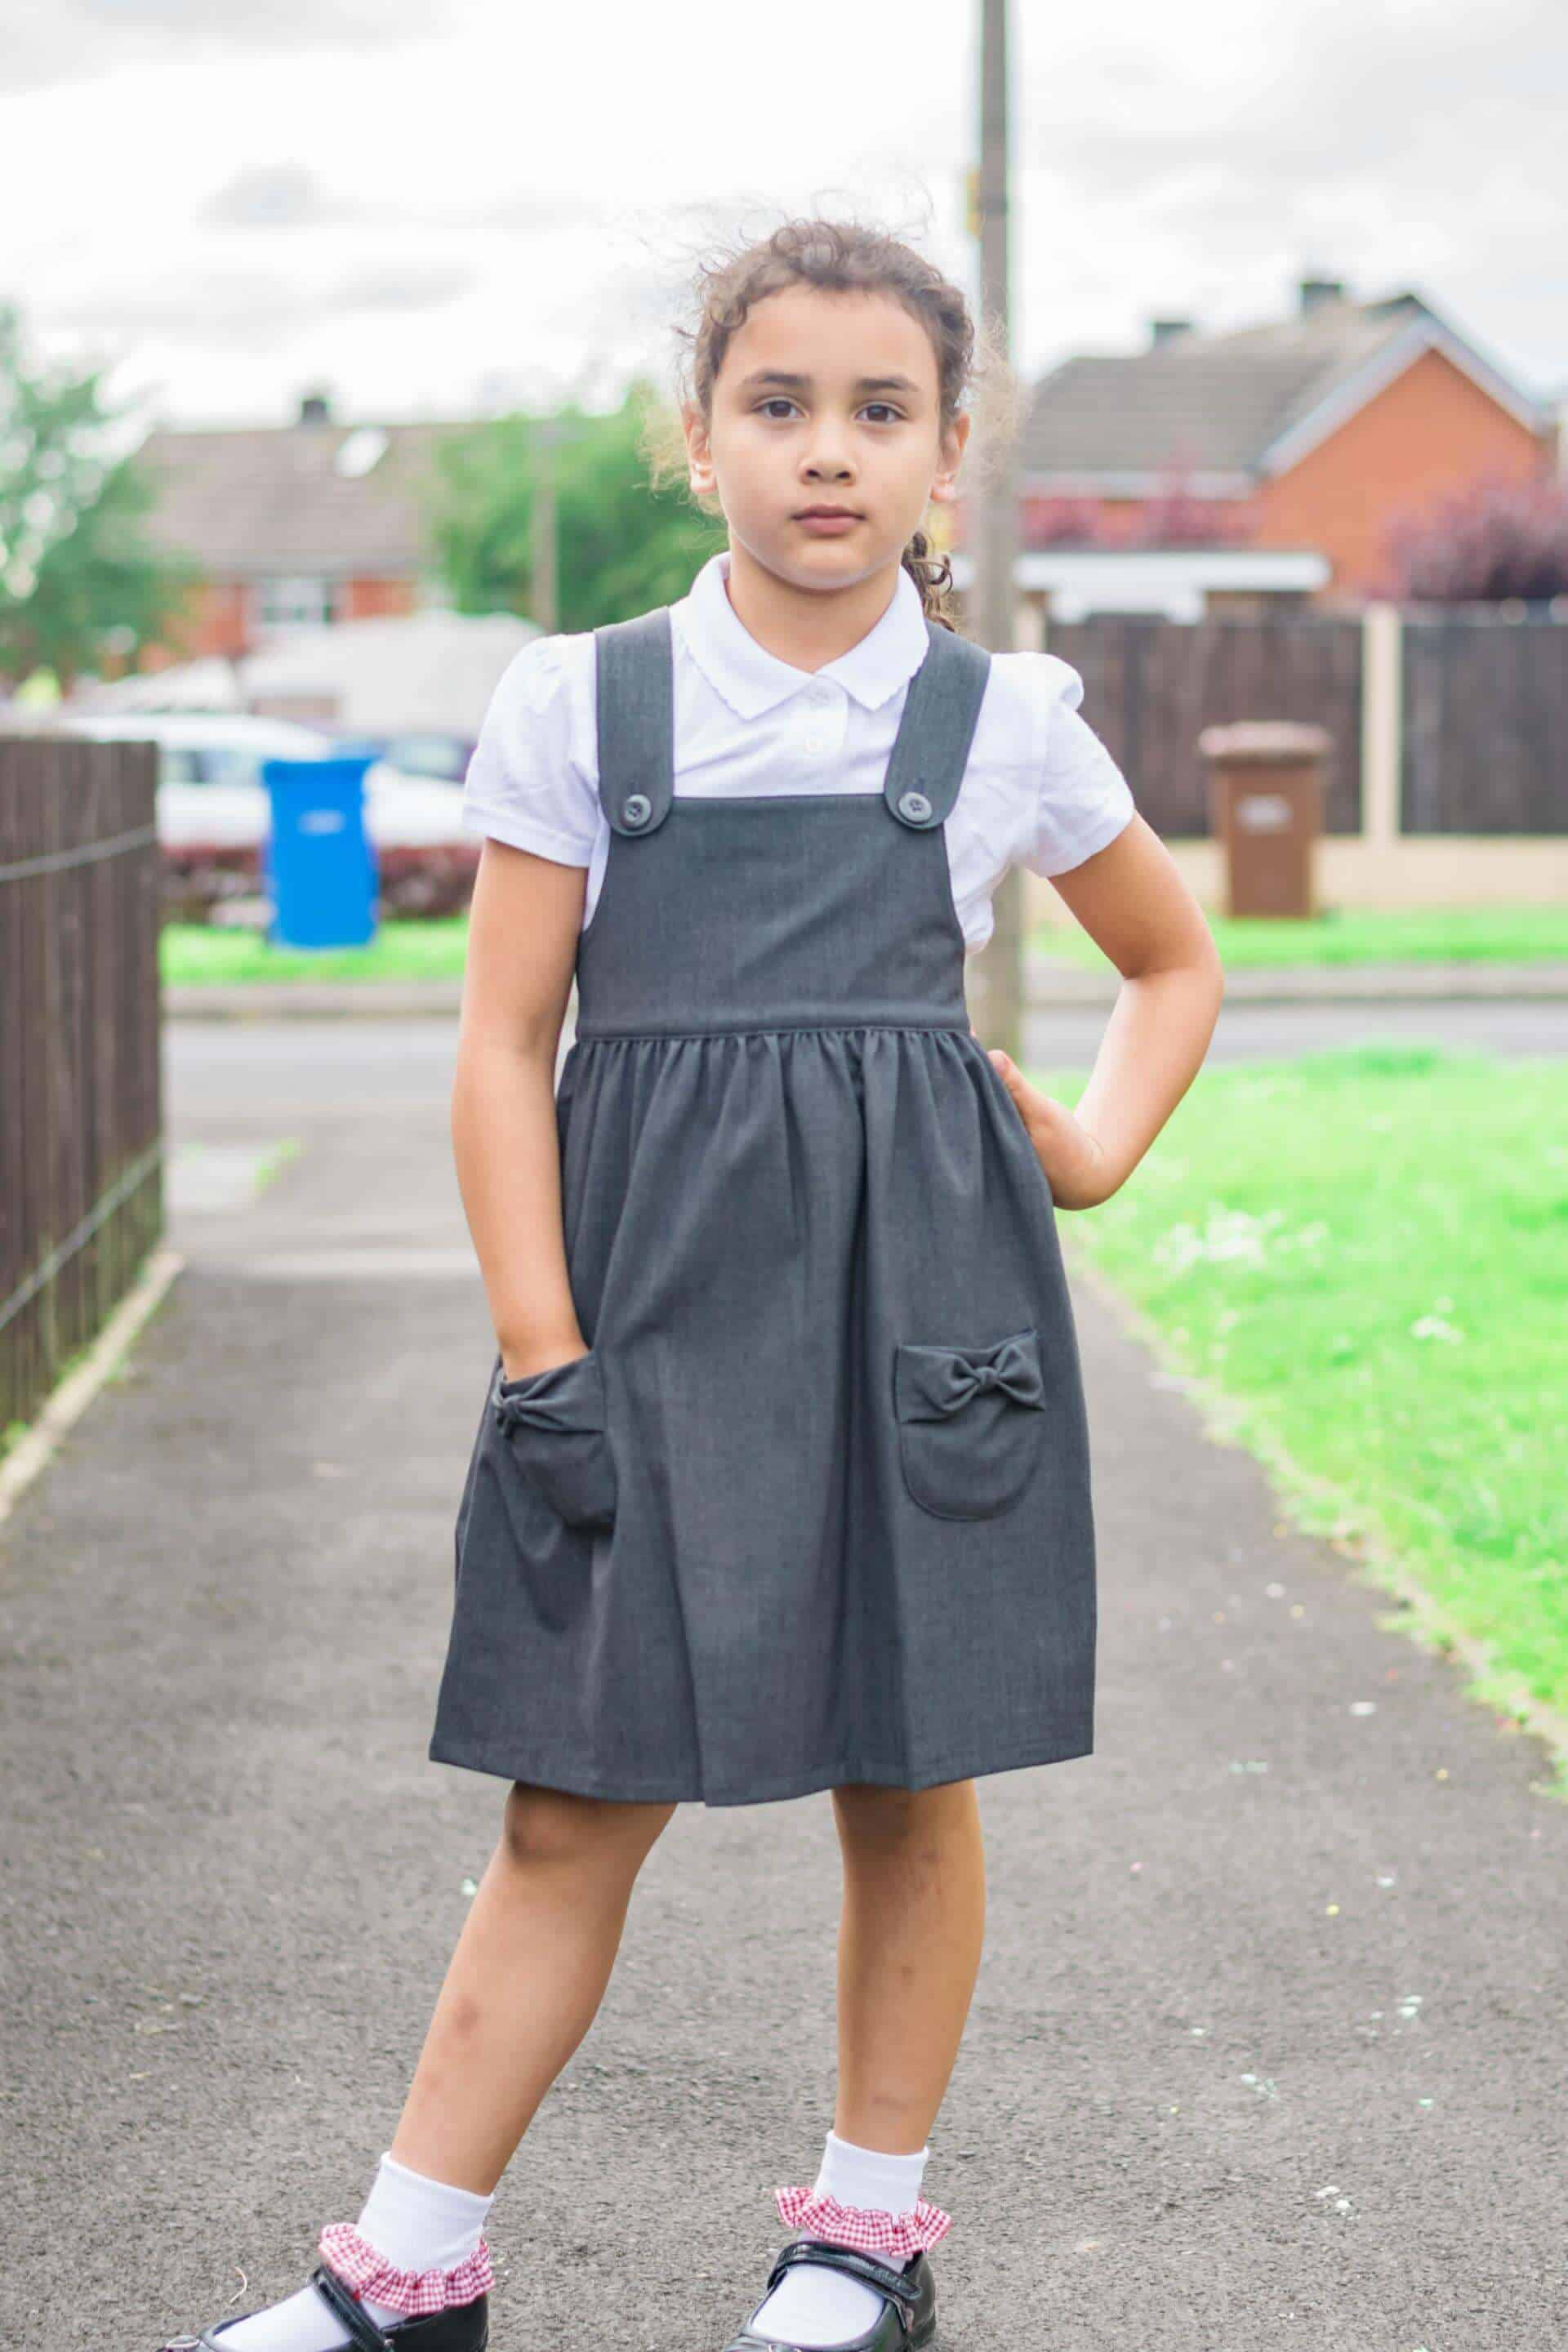 b1331dacc0 The Matalan uniform Pinafore is affordable and in our usual price bracket  for school uniform items. The socks came in a pair of three with different  ...